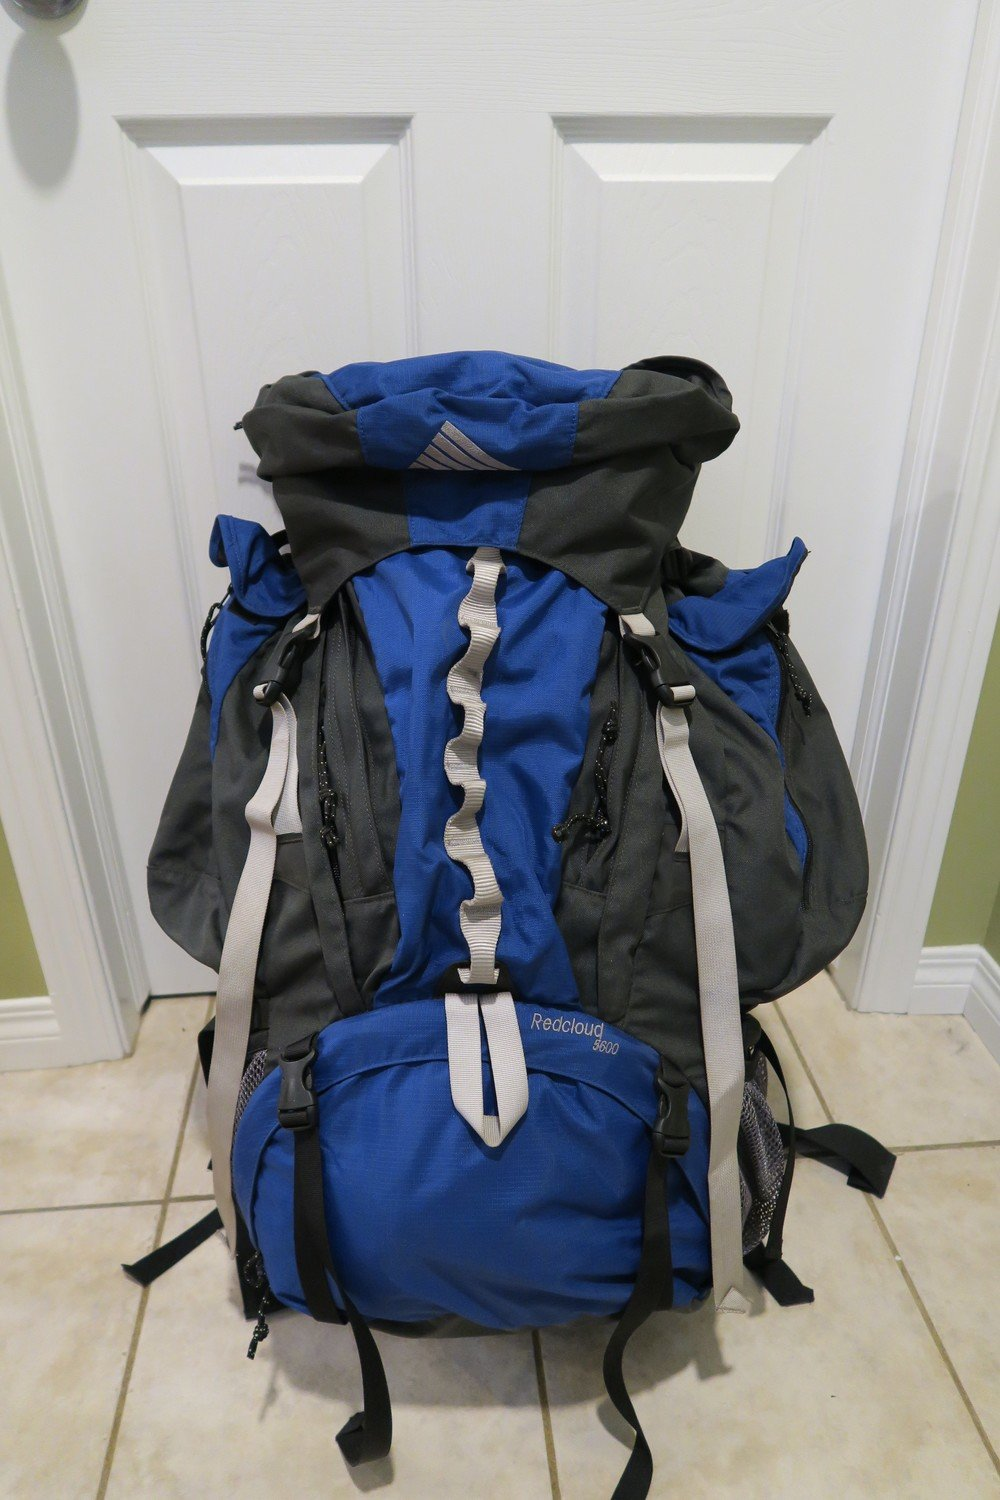 Kelty Redcloud 5600 (92L) Expedition Backpack - Used , great shape